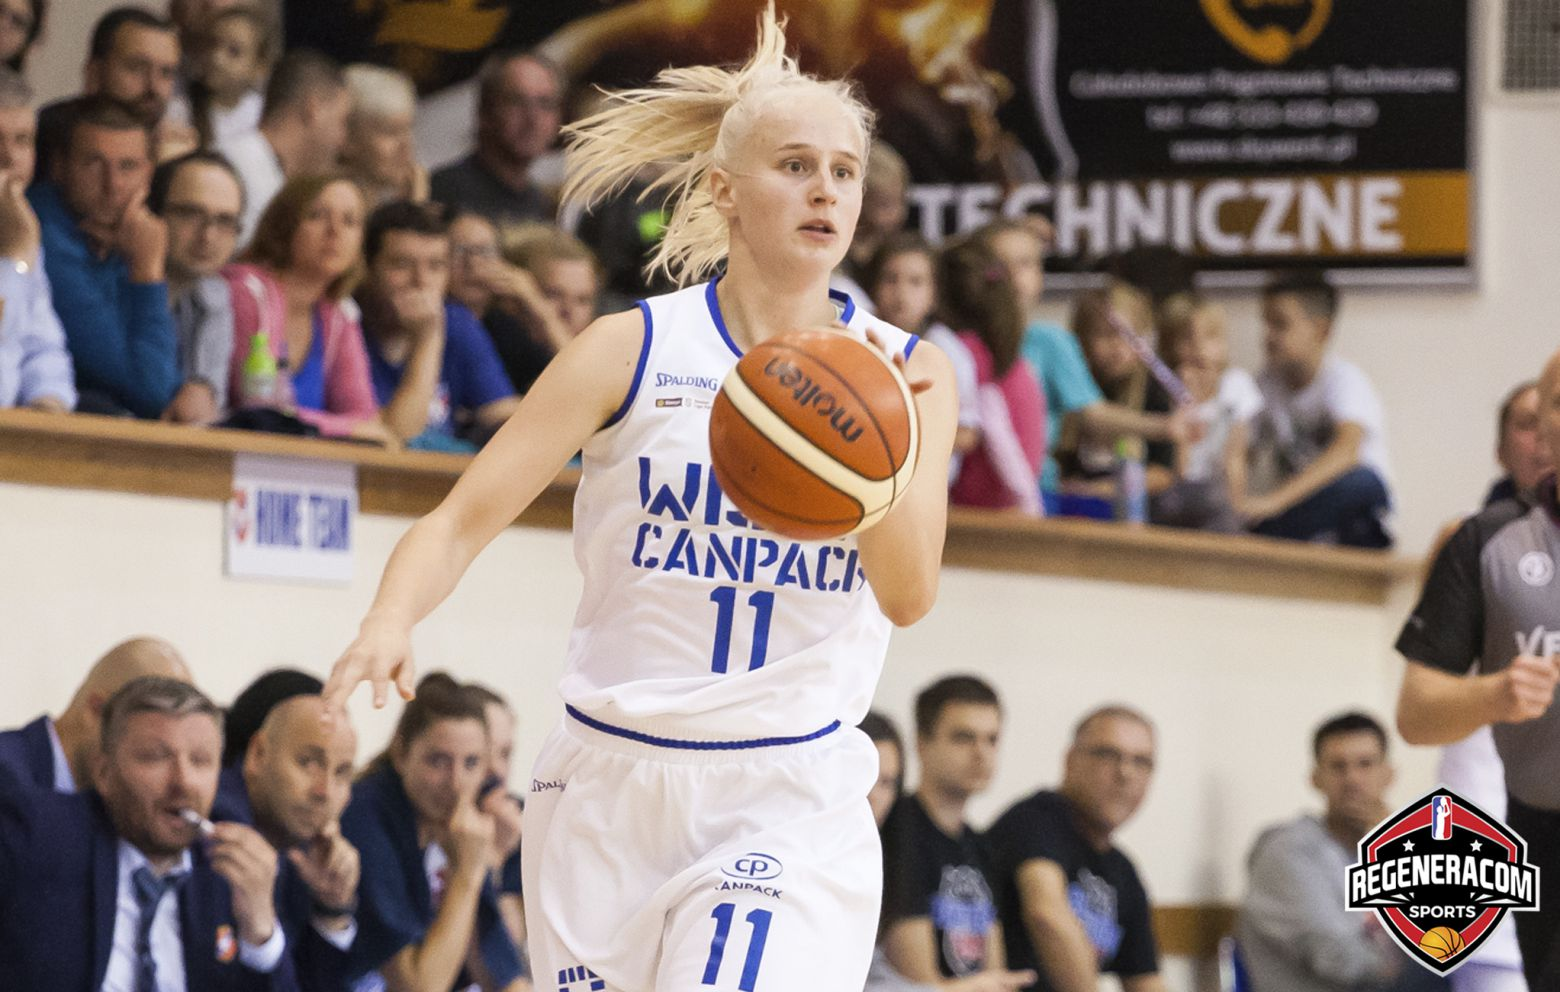 BOZICA MUJOVIC has signed with Al-Qázeres